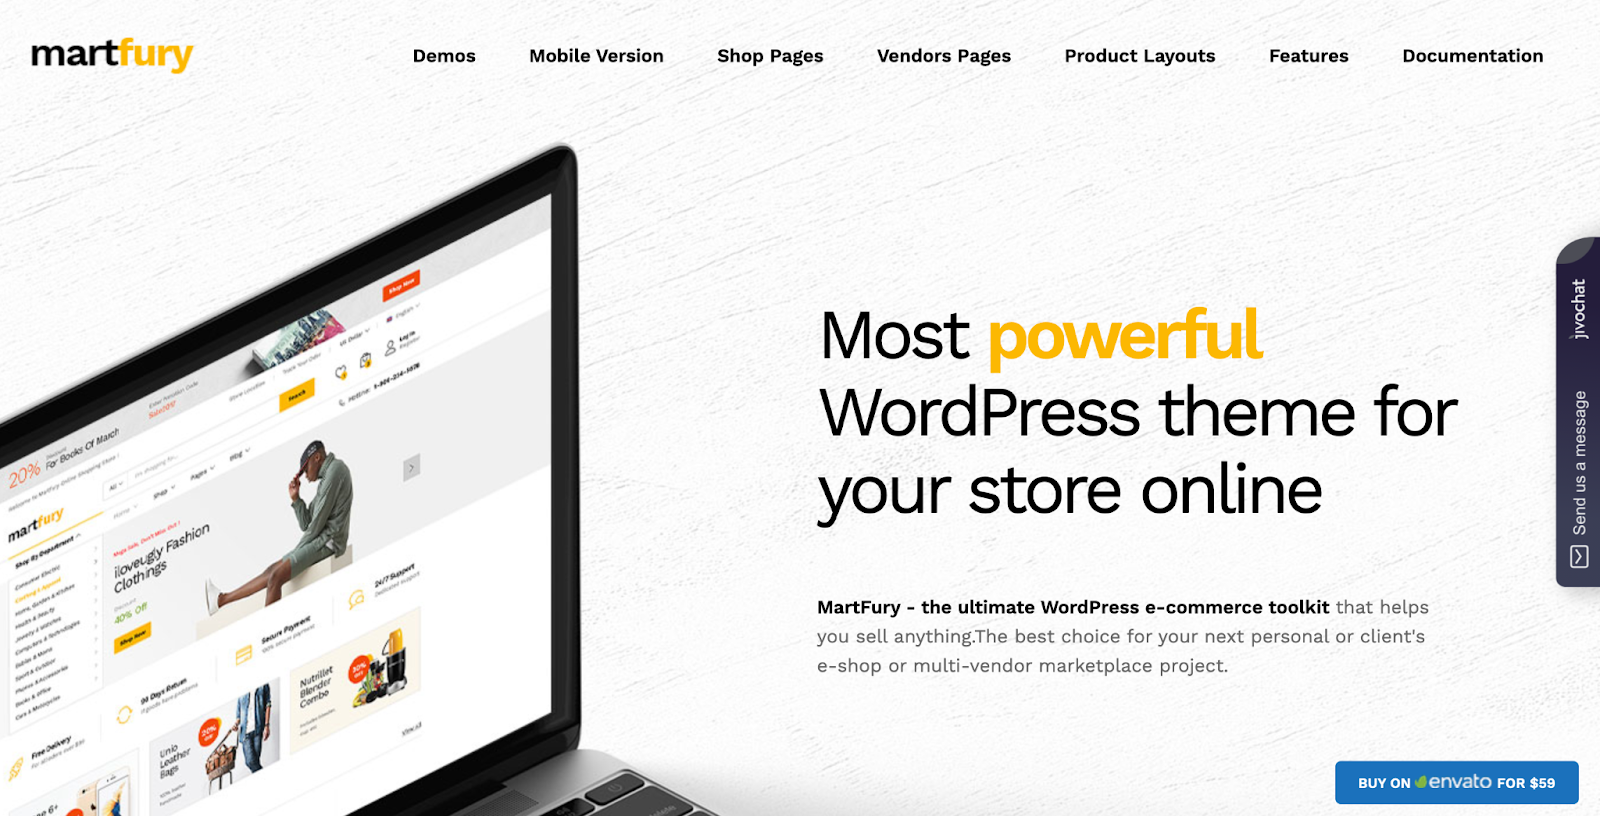 Martfury WordPress Marketplace theme homepage featuring the tagline, computer screen, and example of the the theme layout